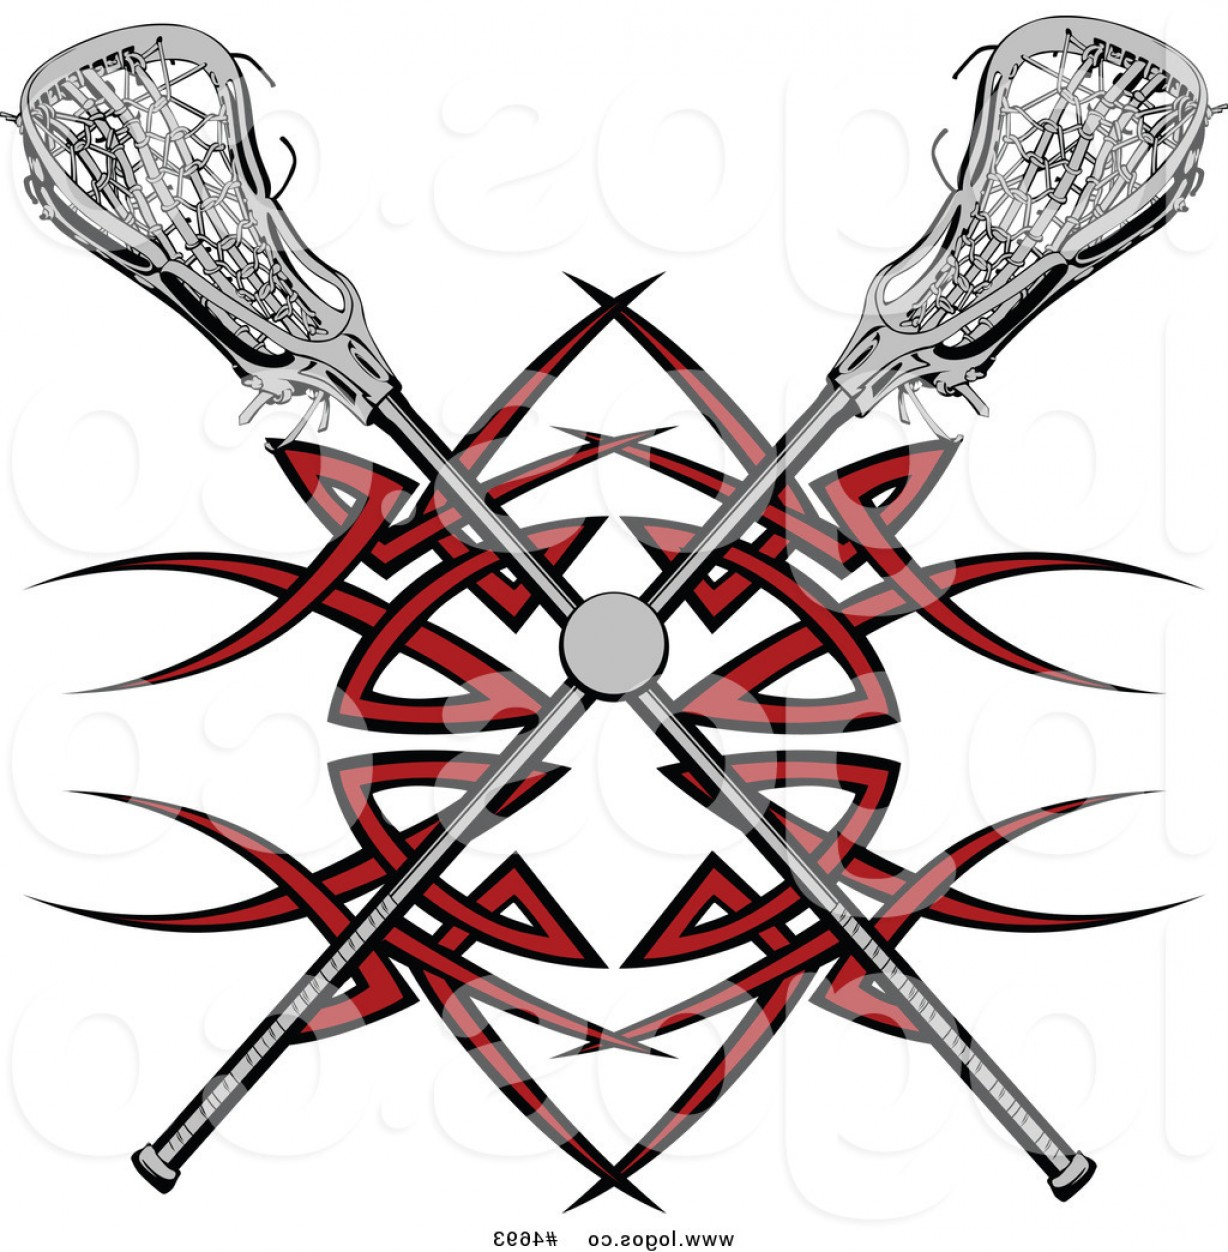 Lacrosse Stick Vector: Royalty Free Clip Art Vector Logo Of A Lacrosse Ball And Crossed Sticks Over A Red Tribal Design By Chromaco